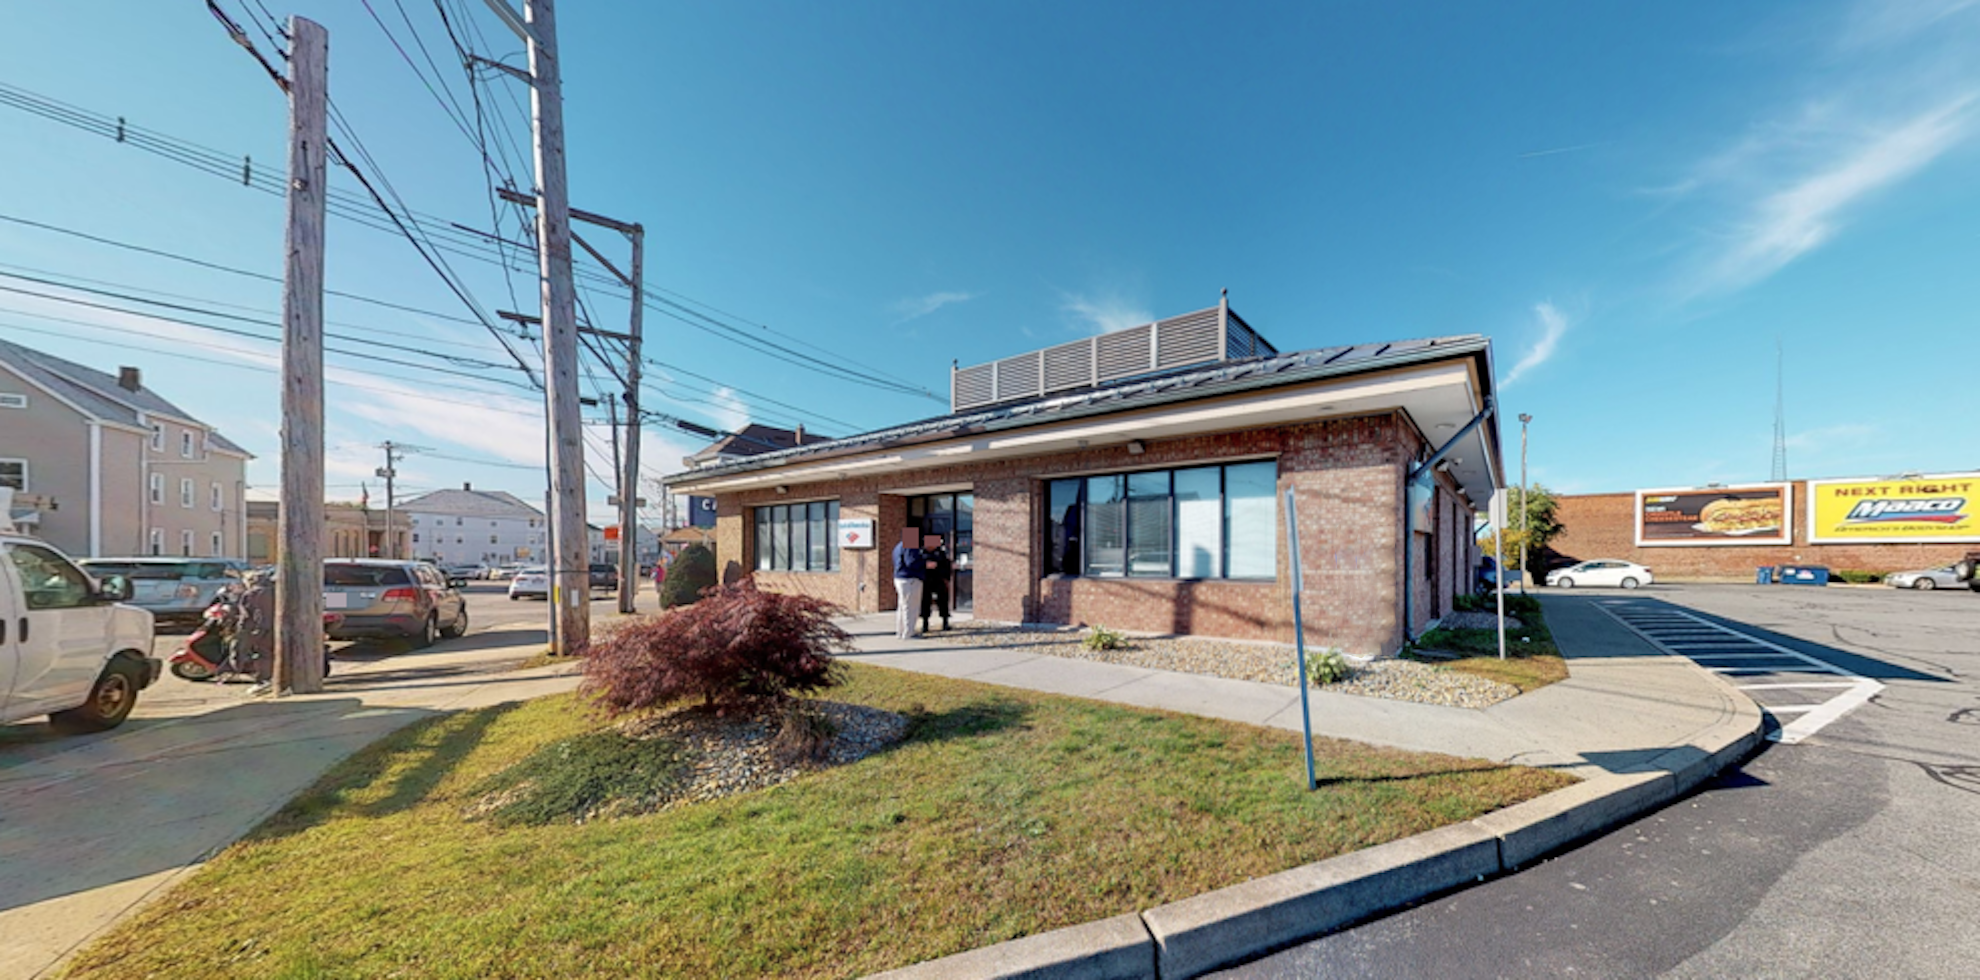 Bank of America financial center with drive-thru ATM | 145 Cove St, New Bedford, MA 02744